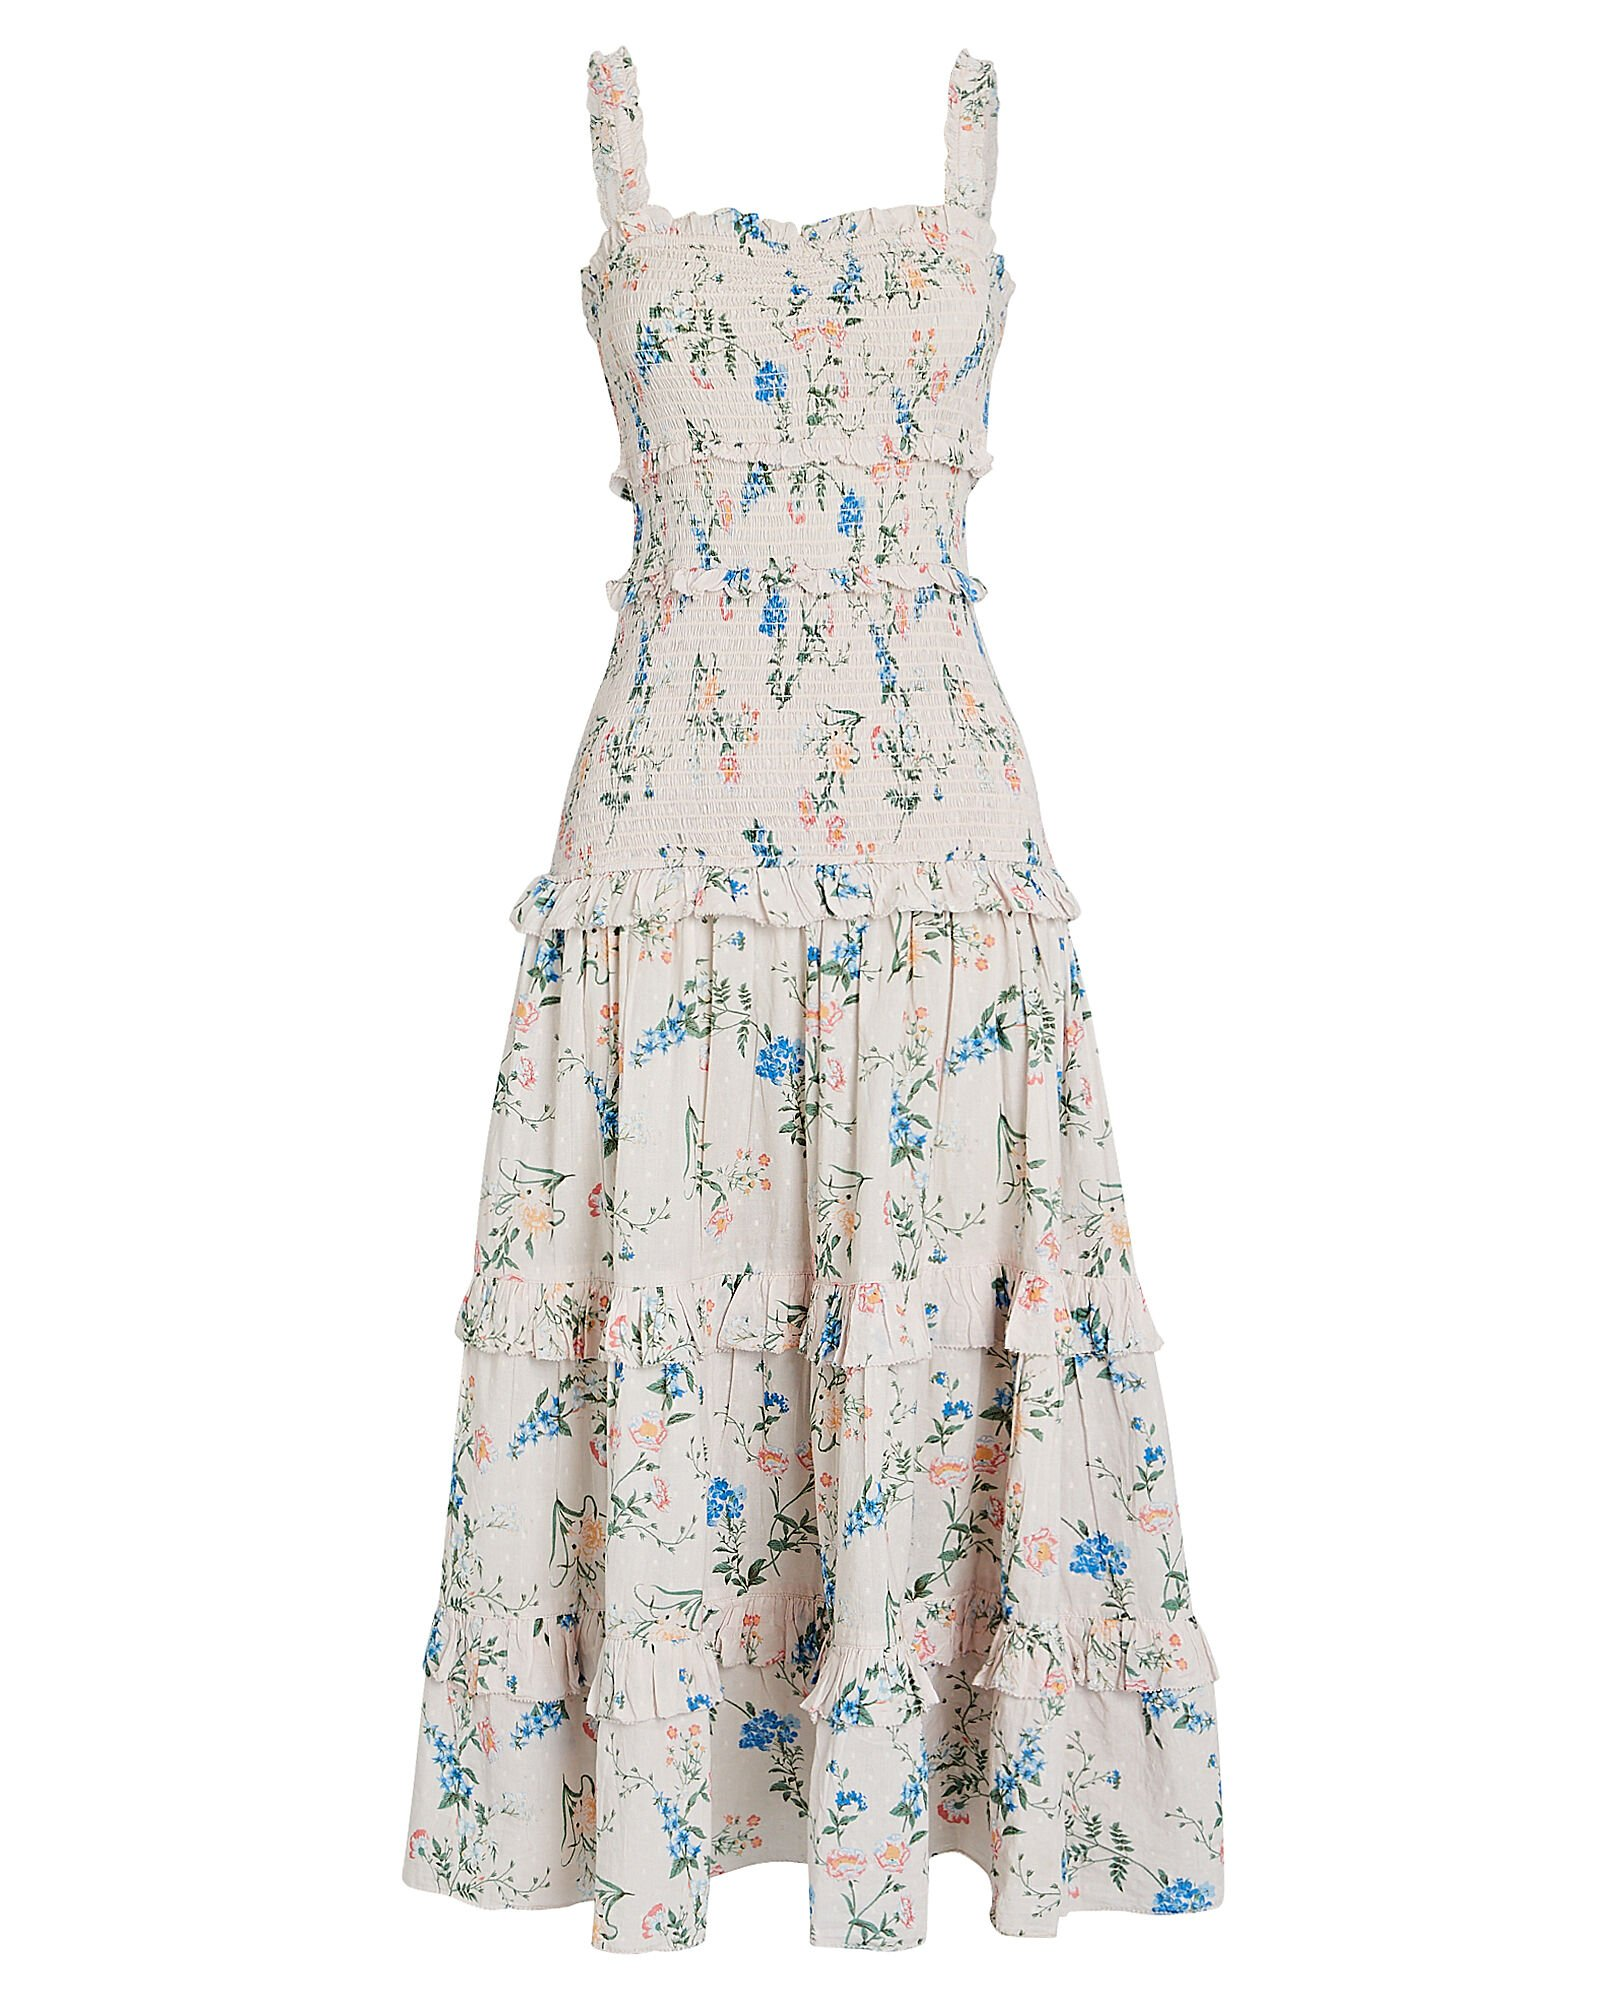 Altea Smocked Floral Cotton Dress, IVORY, hi-res